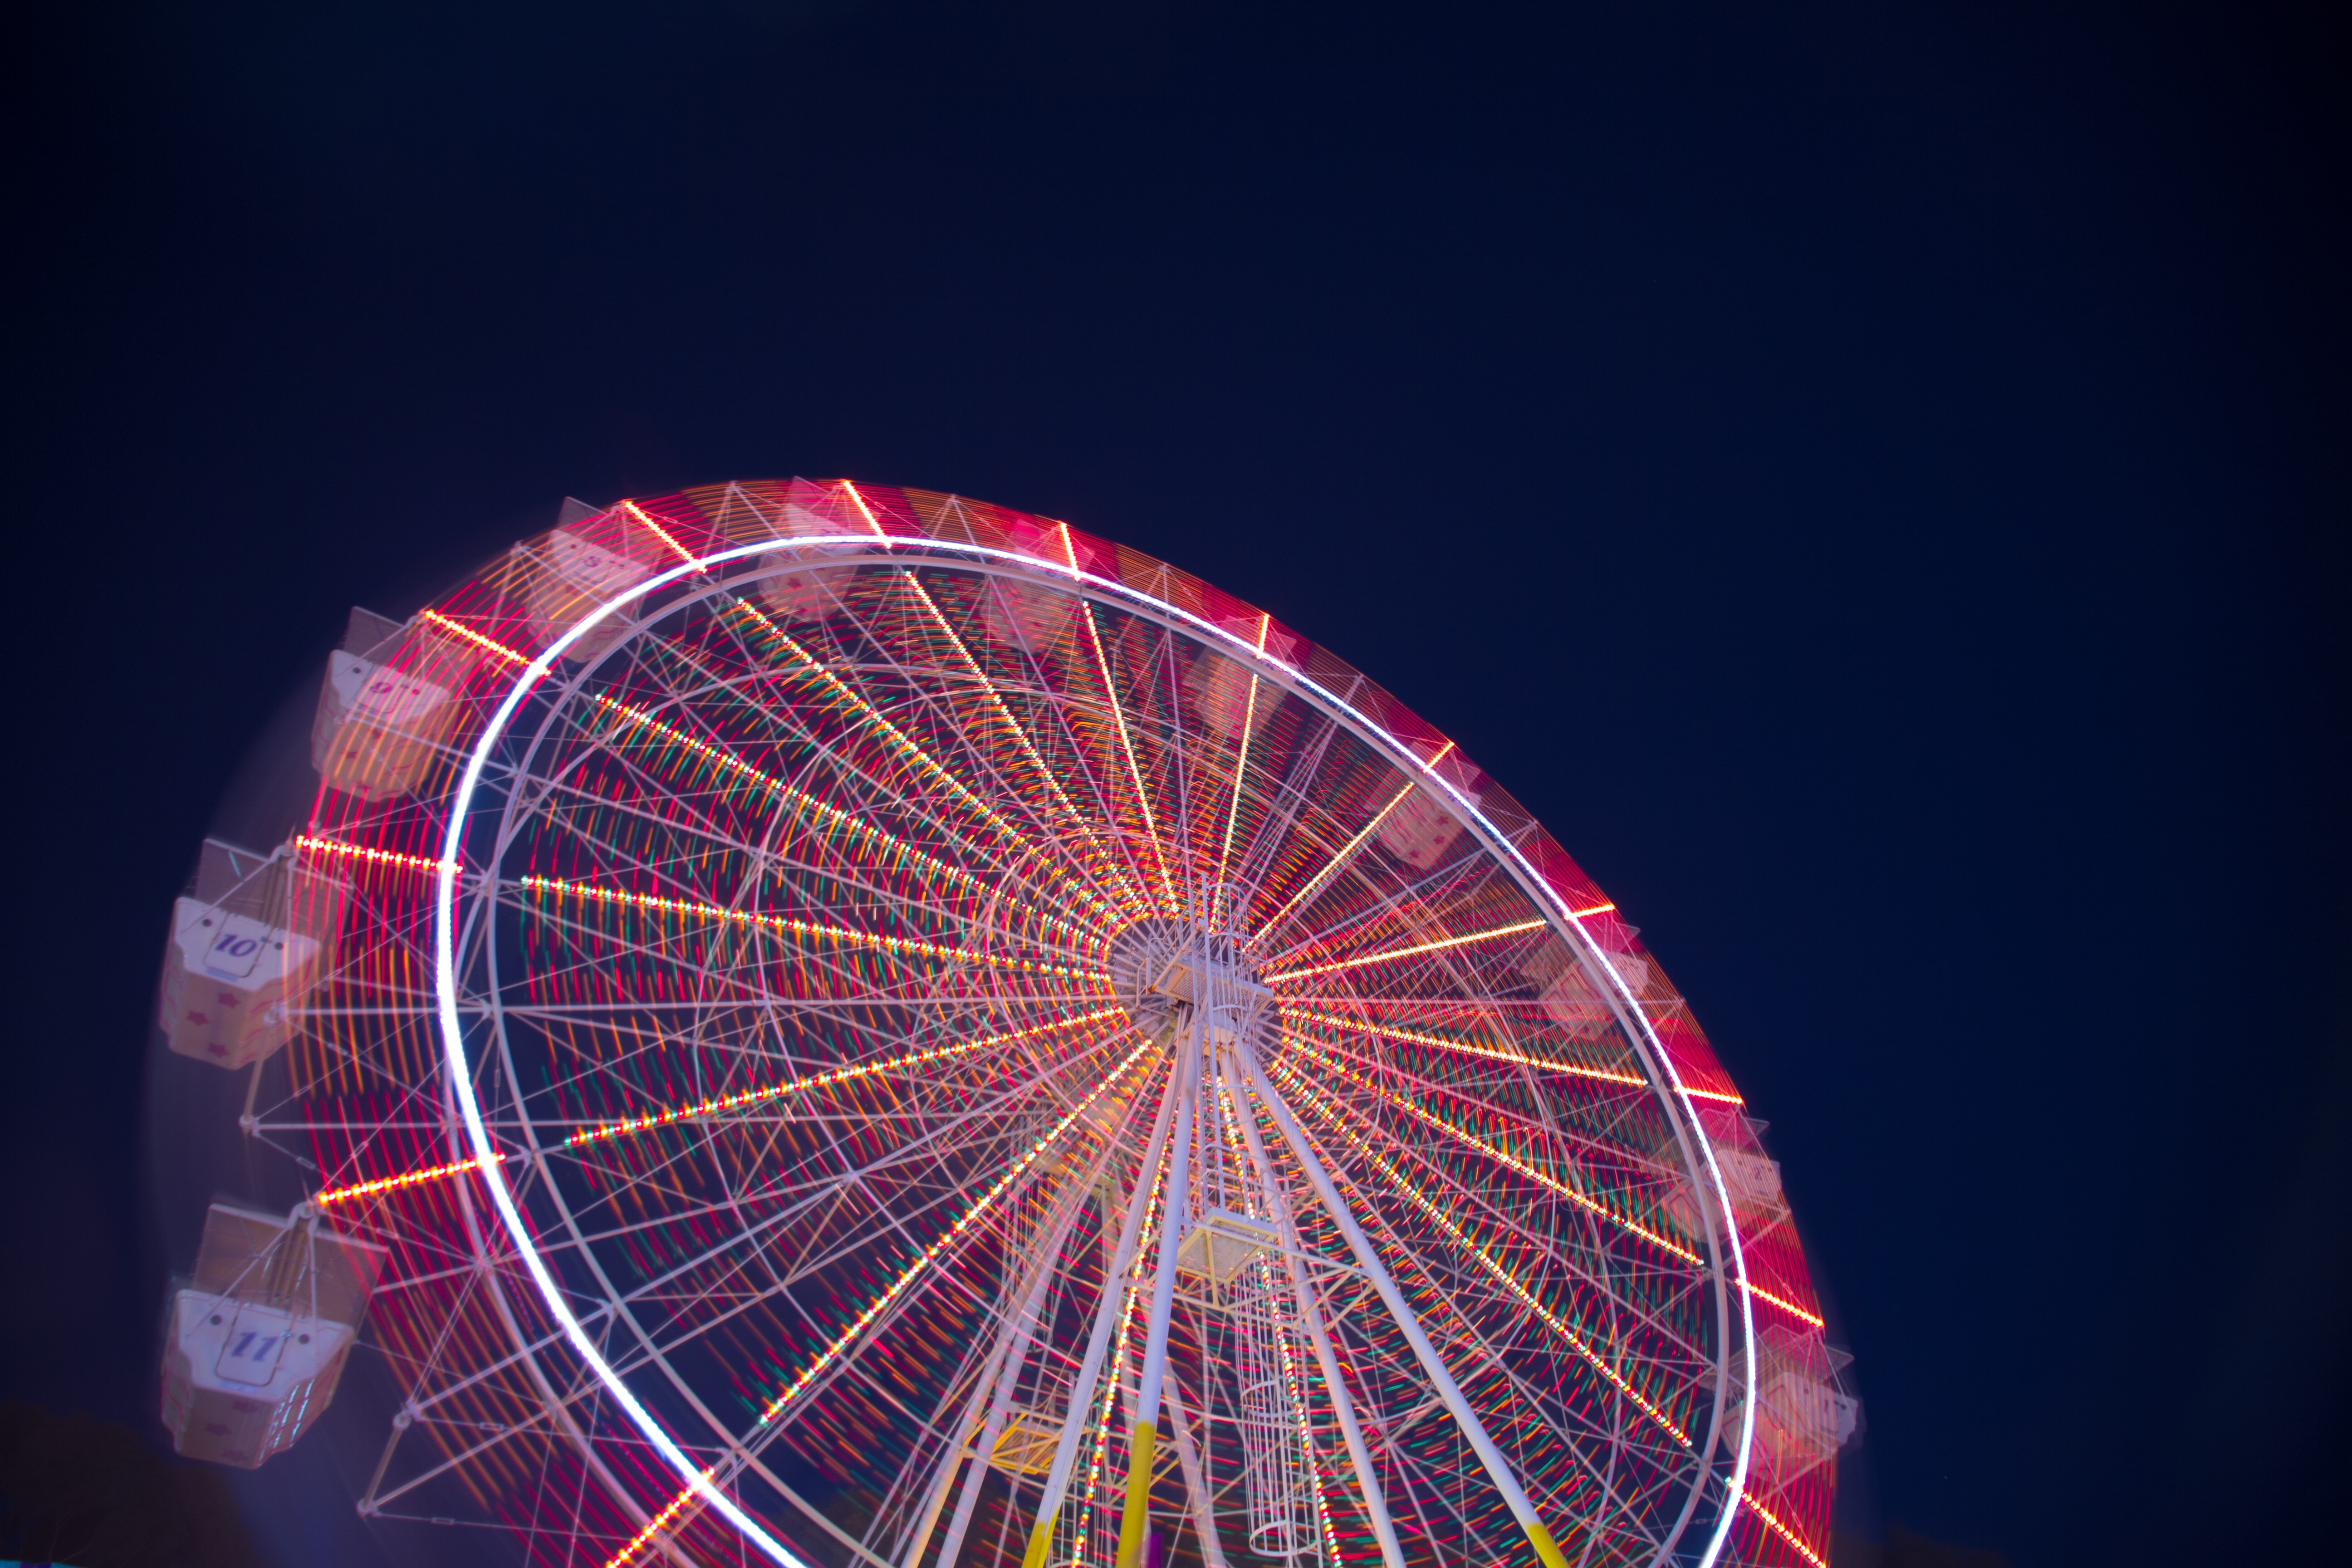 timelapse low angle of white and red ferris wheel